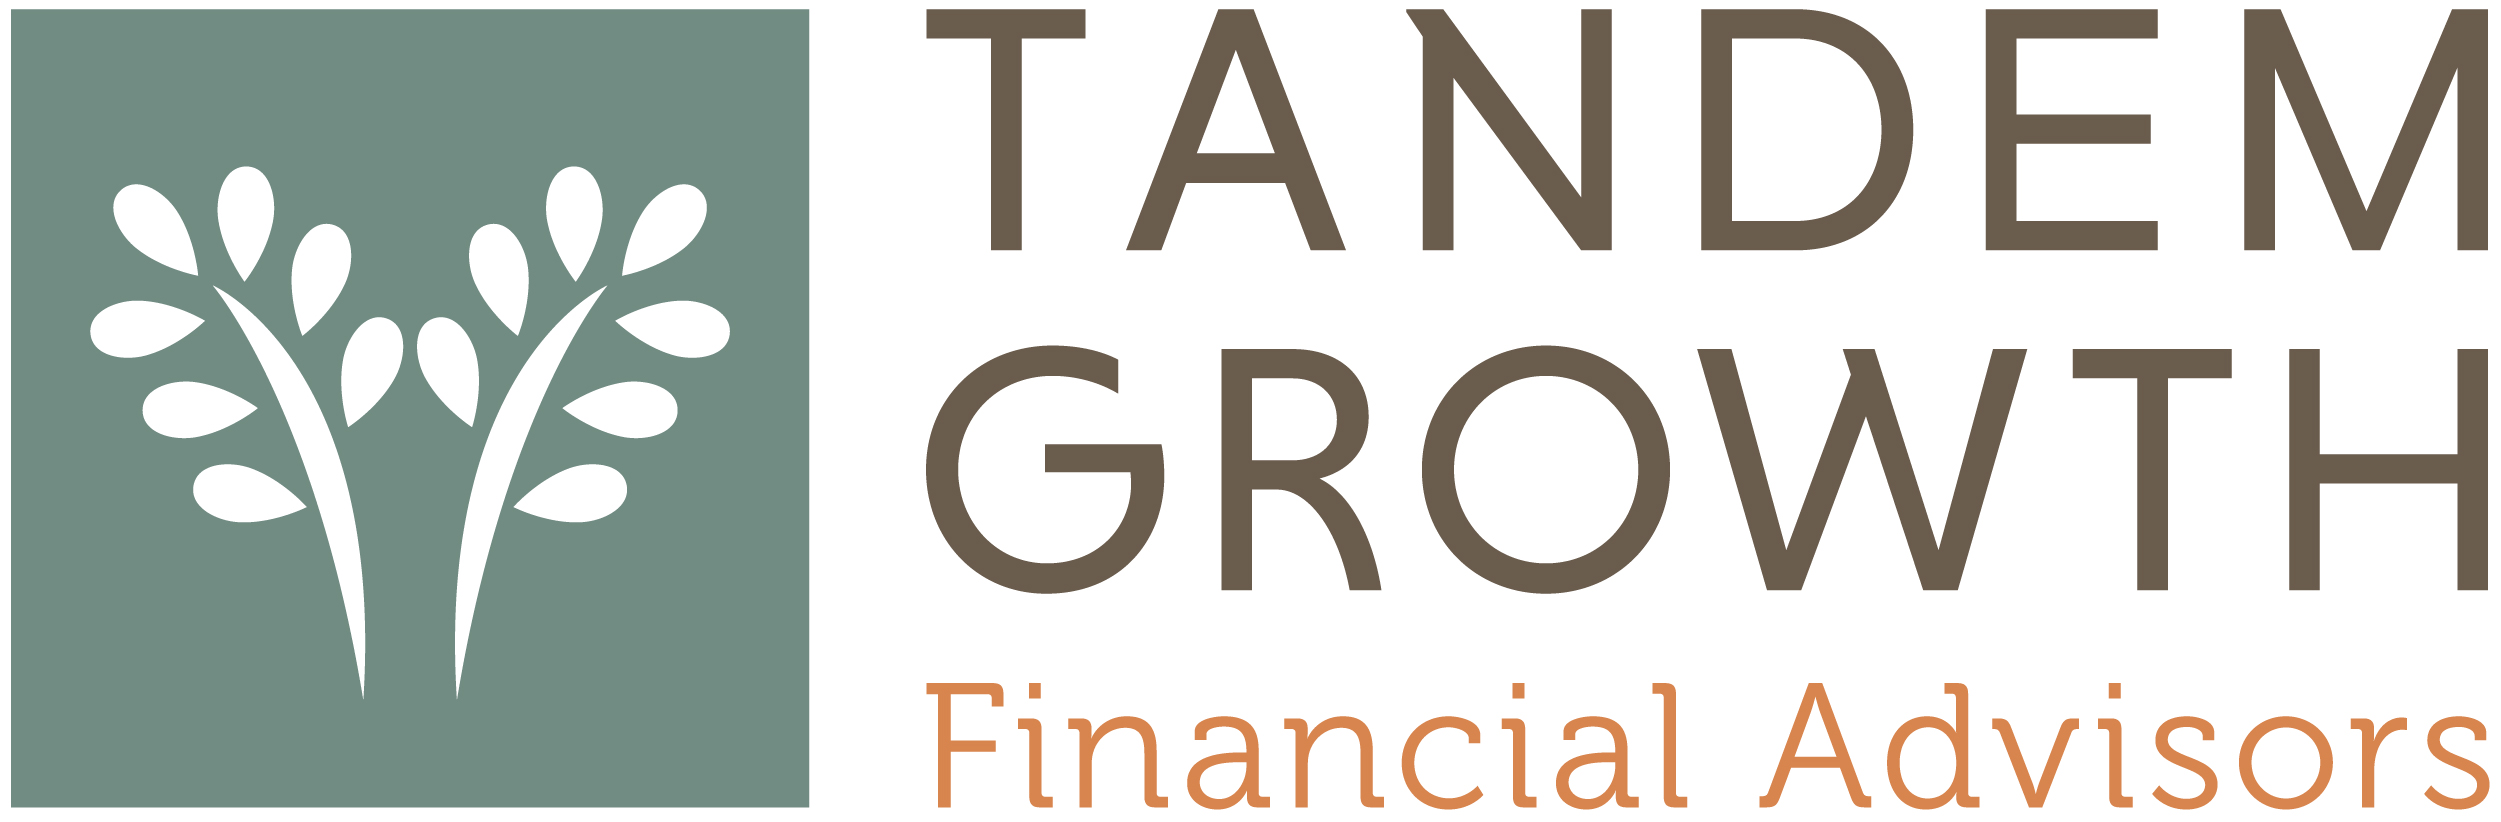 TandemGrowthFinancial Advisors, LLC